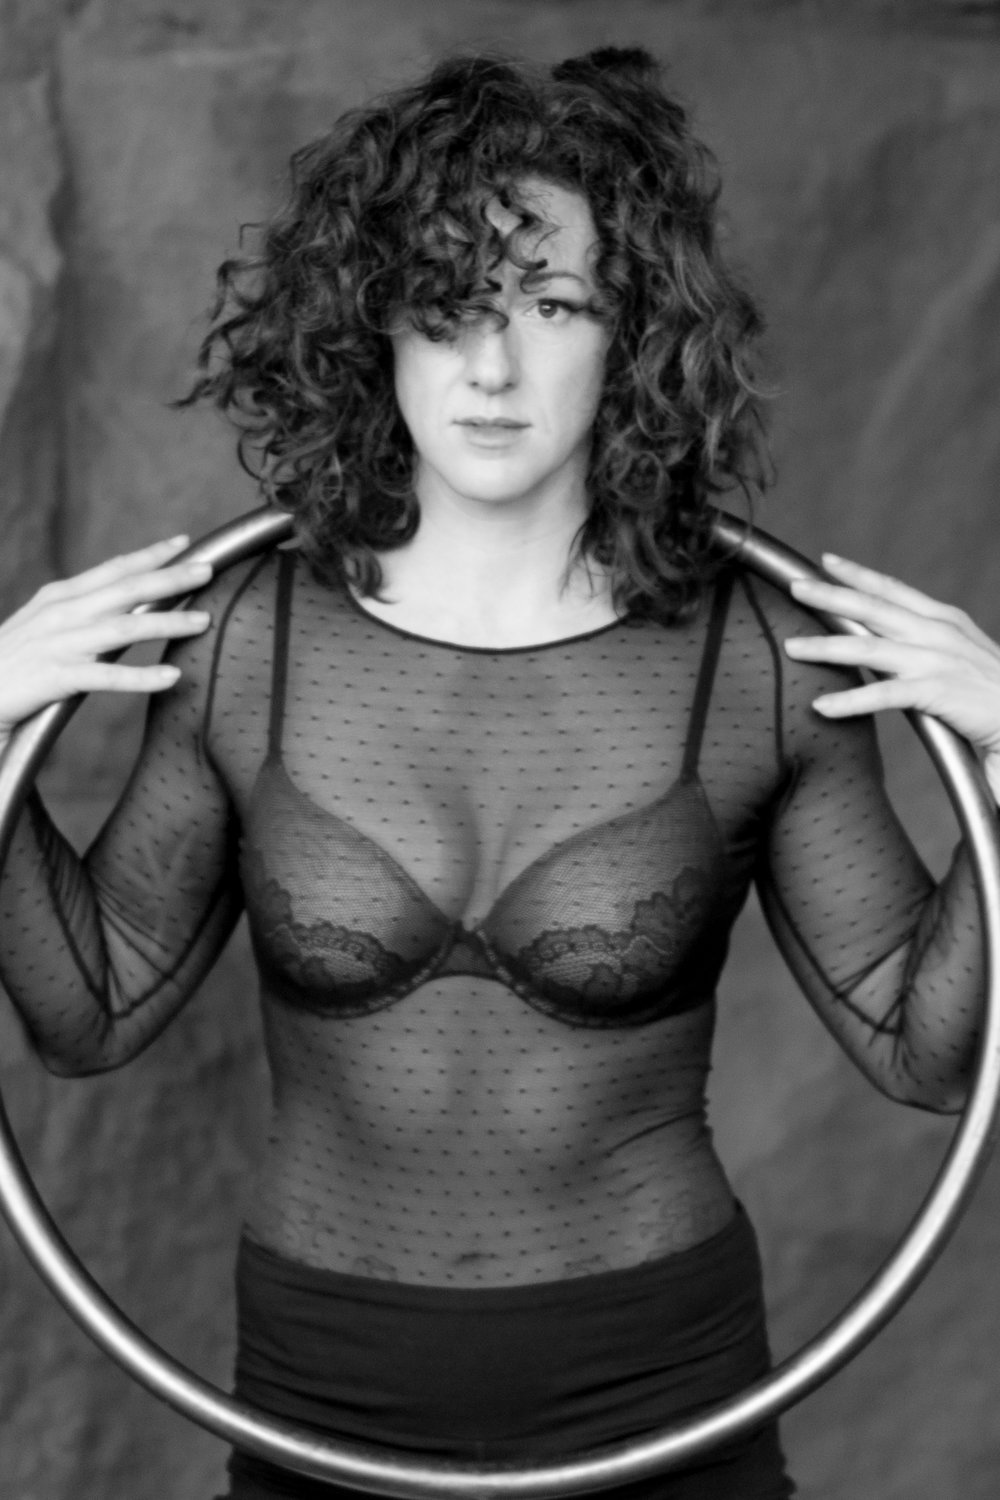 GWYNNE FLANAGAN  has been a fixture in the Washington DC circus scene since 2010. Originally from California, she studied theater arts at San Francisco State University, and completed an MFA in Acting from the American Conservatory Theater.  In 2012, Flanagan graduated from the New England Center for Circus Arts Performance Program, with a focus on aerial fabric and duo trapeze.  Gwynne believes the key to transformative storytelling demands evocative and visceral physical engagement. She is passionate about creating performances that bridge the  gap between contemporary theater and circus. Early on in her career, Gwynne worked as a stage fighter and stunt woman in Taiwan, and was drawn toward circus while living in New York City.    Gwynne is a founding member of Girls on Trapeze and Infinite Stage Theater. She has routinely performed with; Nimble Arts, Show Circus, Arachne Aerial Arts, Artisan Athletics, In the Dark Circus Arts, New York Circus Arts Academy, The Skybox, AirBorne DC, Zip Zap Circus, Deviated Theatre, and In-Flight Theater Company. Flanagan also performs regularly with her duos, Ciel Aerial and Forever Marzipan.   http://www.gwynnewithwings.com/